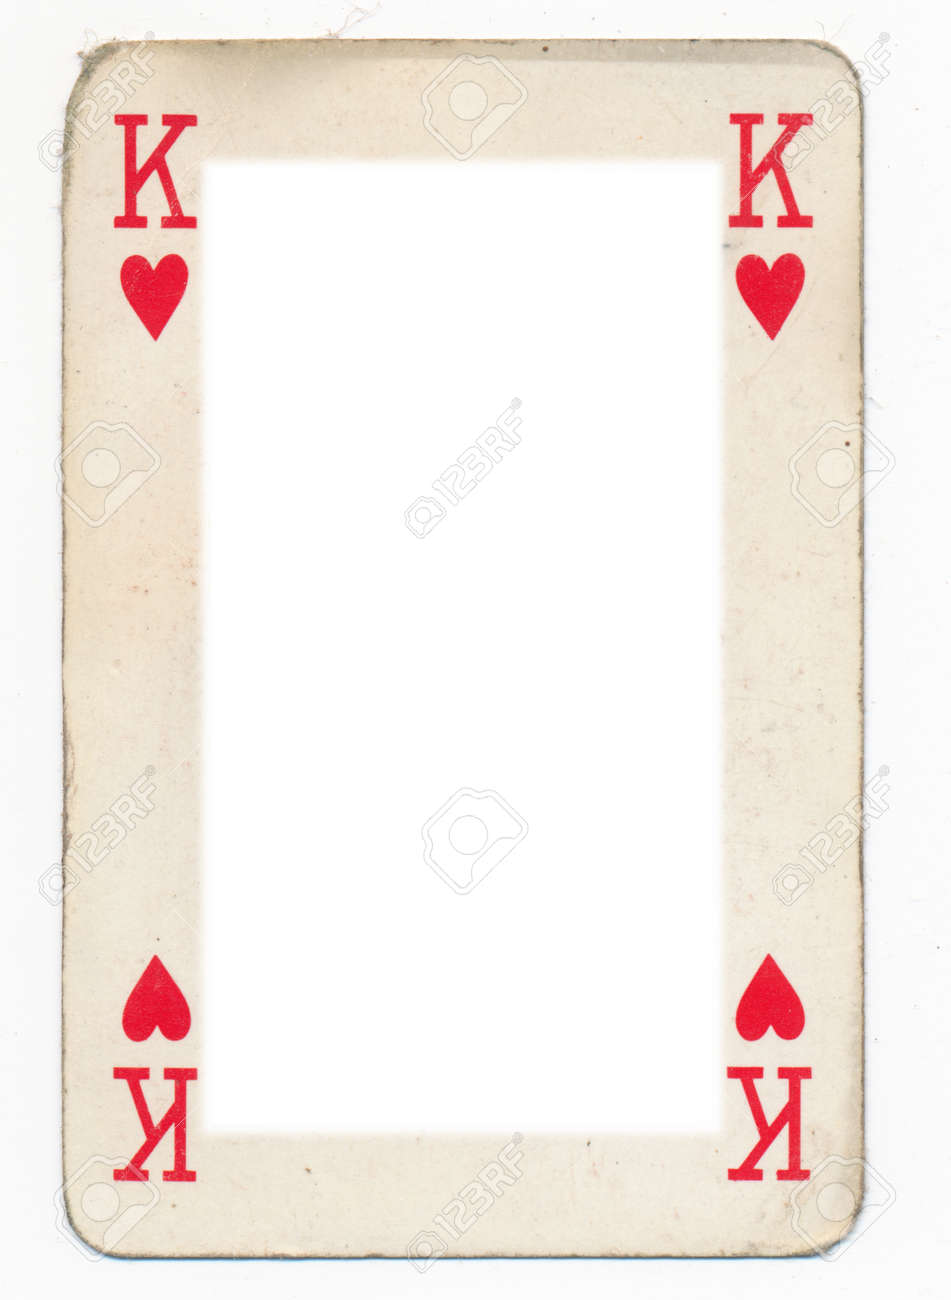 Frame From Old King Of Heart Playing Card. Isolated Stock Photo ...